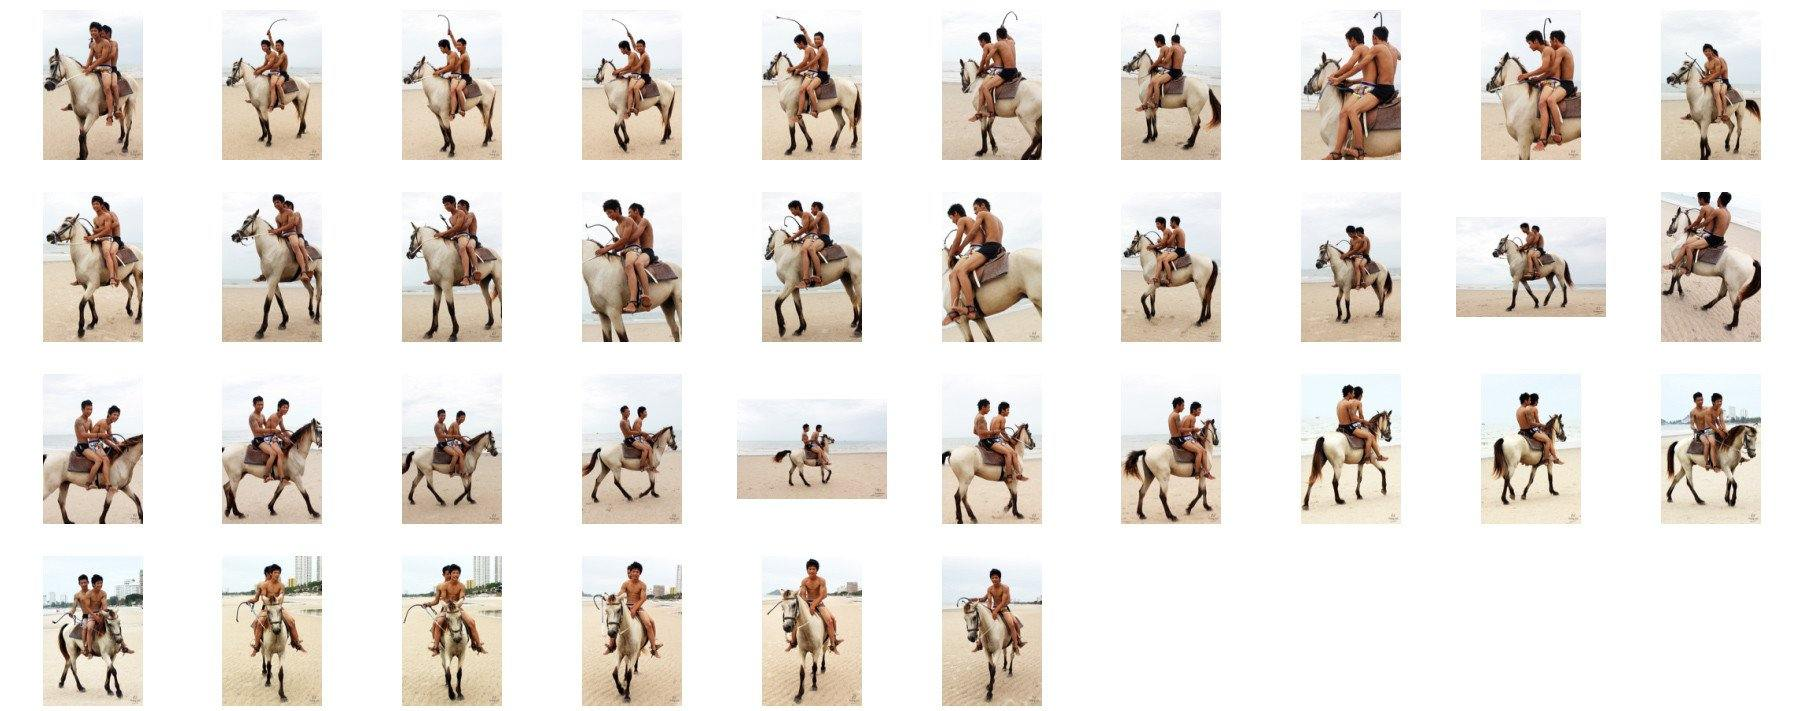 David and Thaksin in Shorts Riding Double with Saddle on Buckskin Horse, Part 10 - Riding.Vision